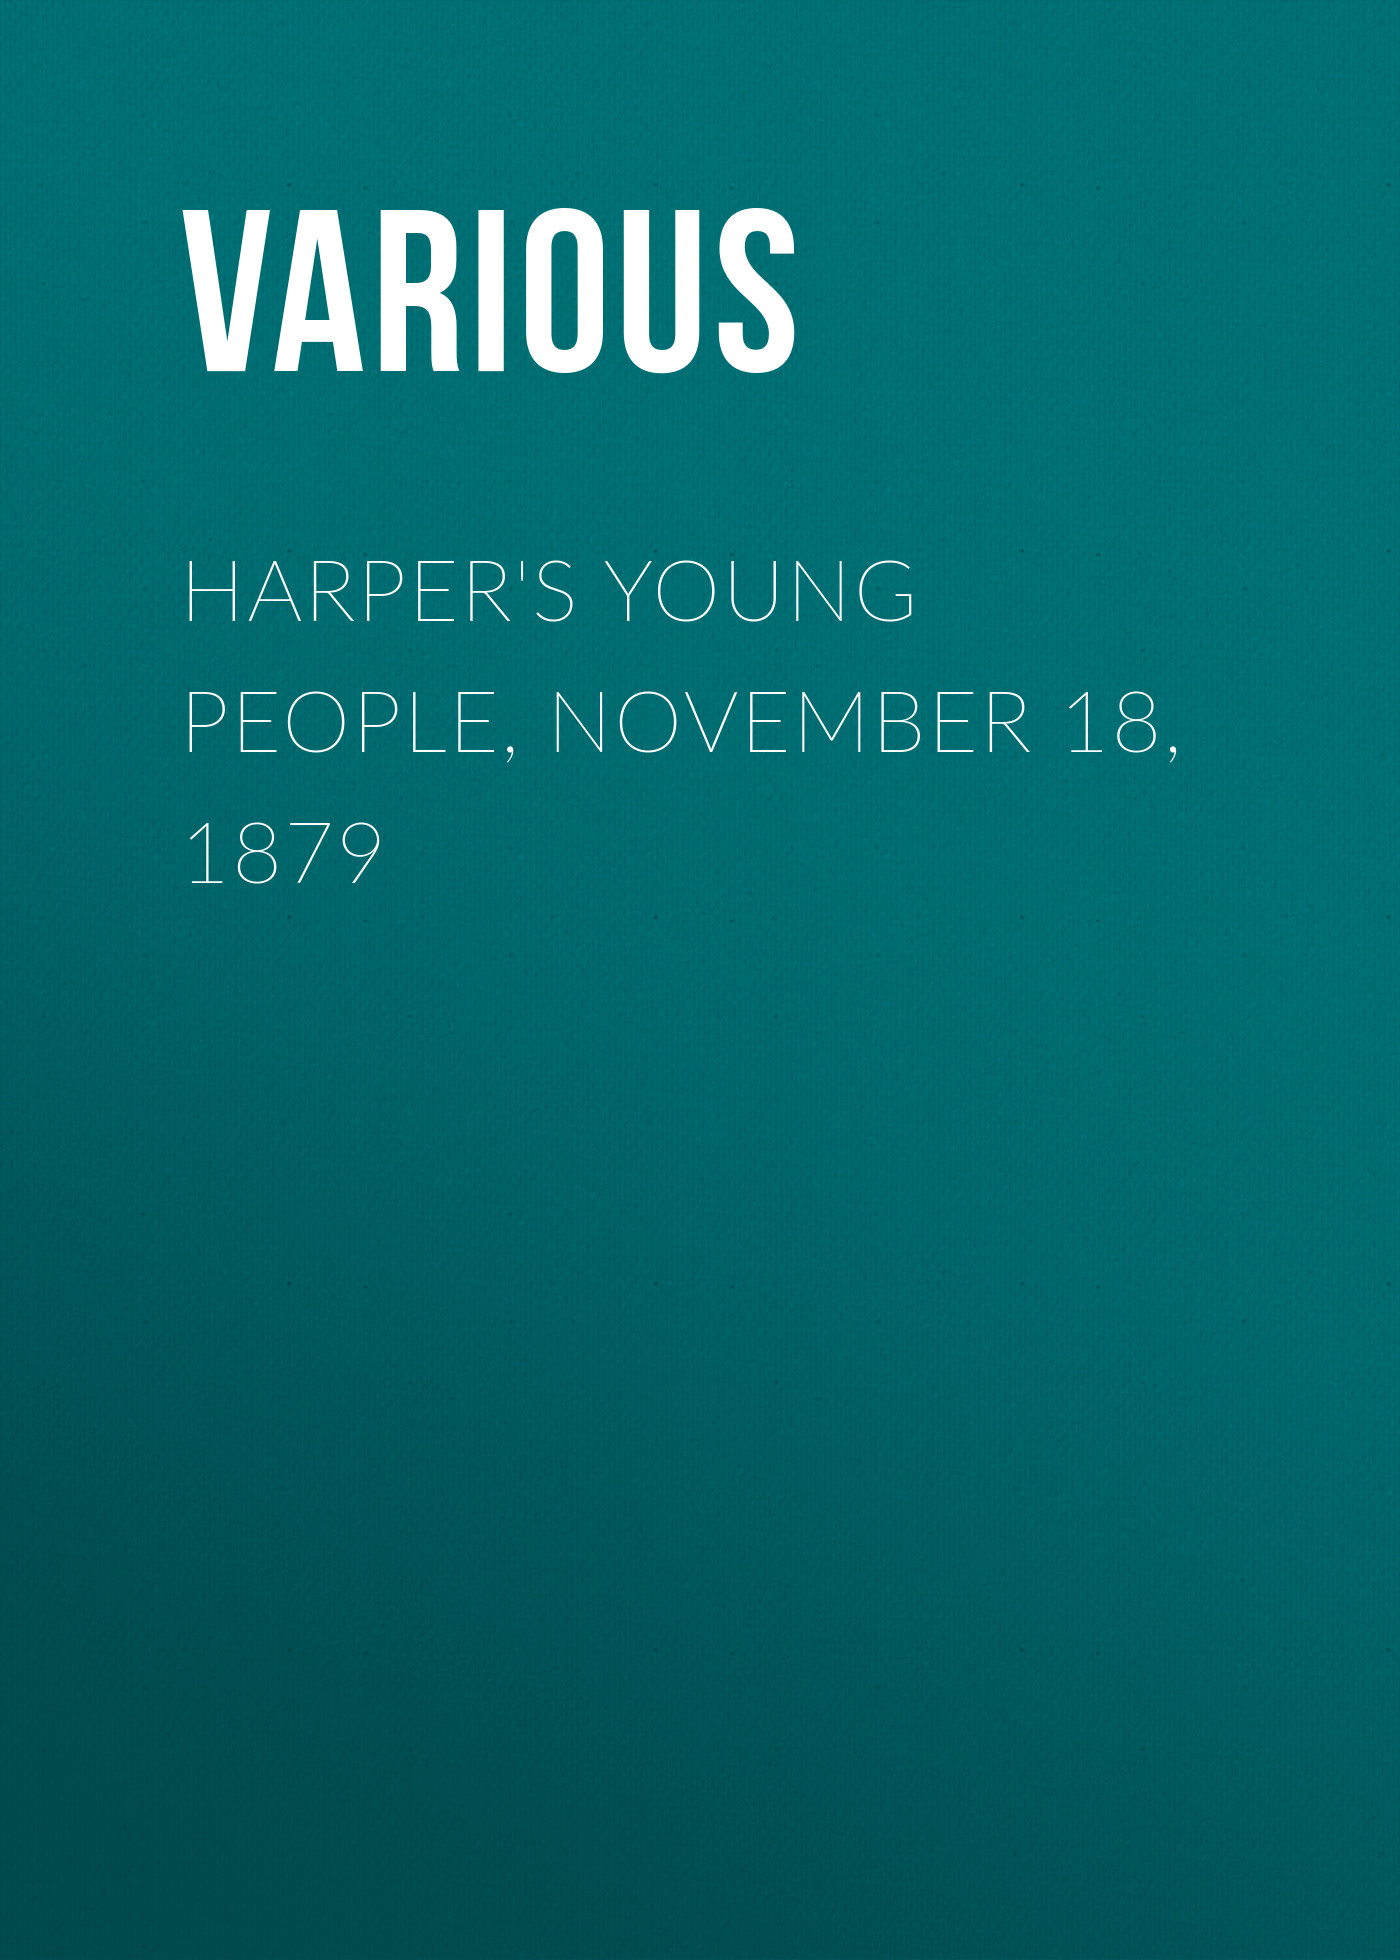 Harper\'s Young People, November 18, 1879 ( Various  )